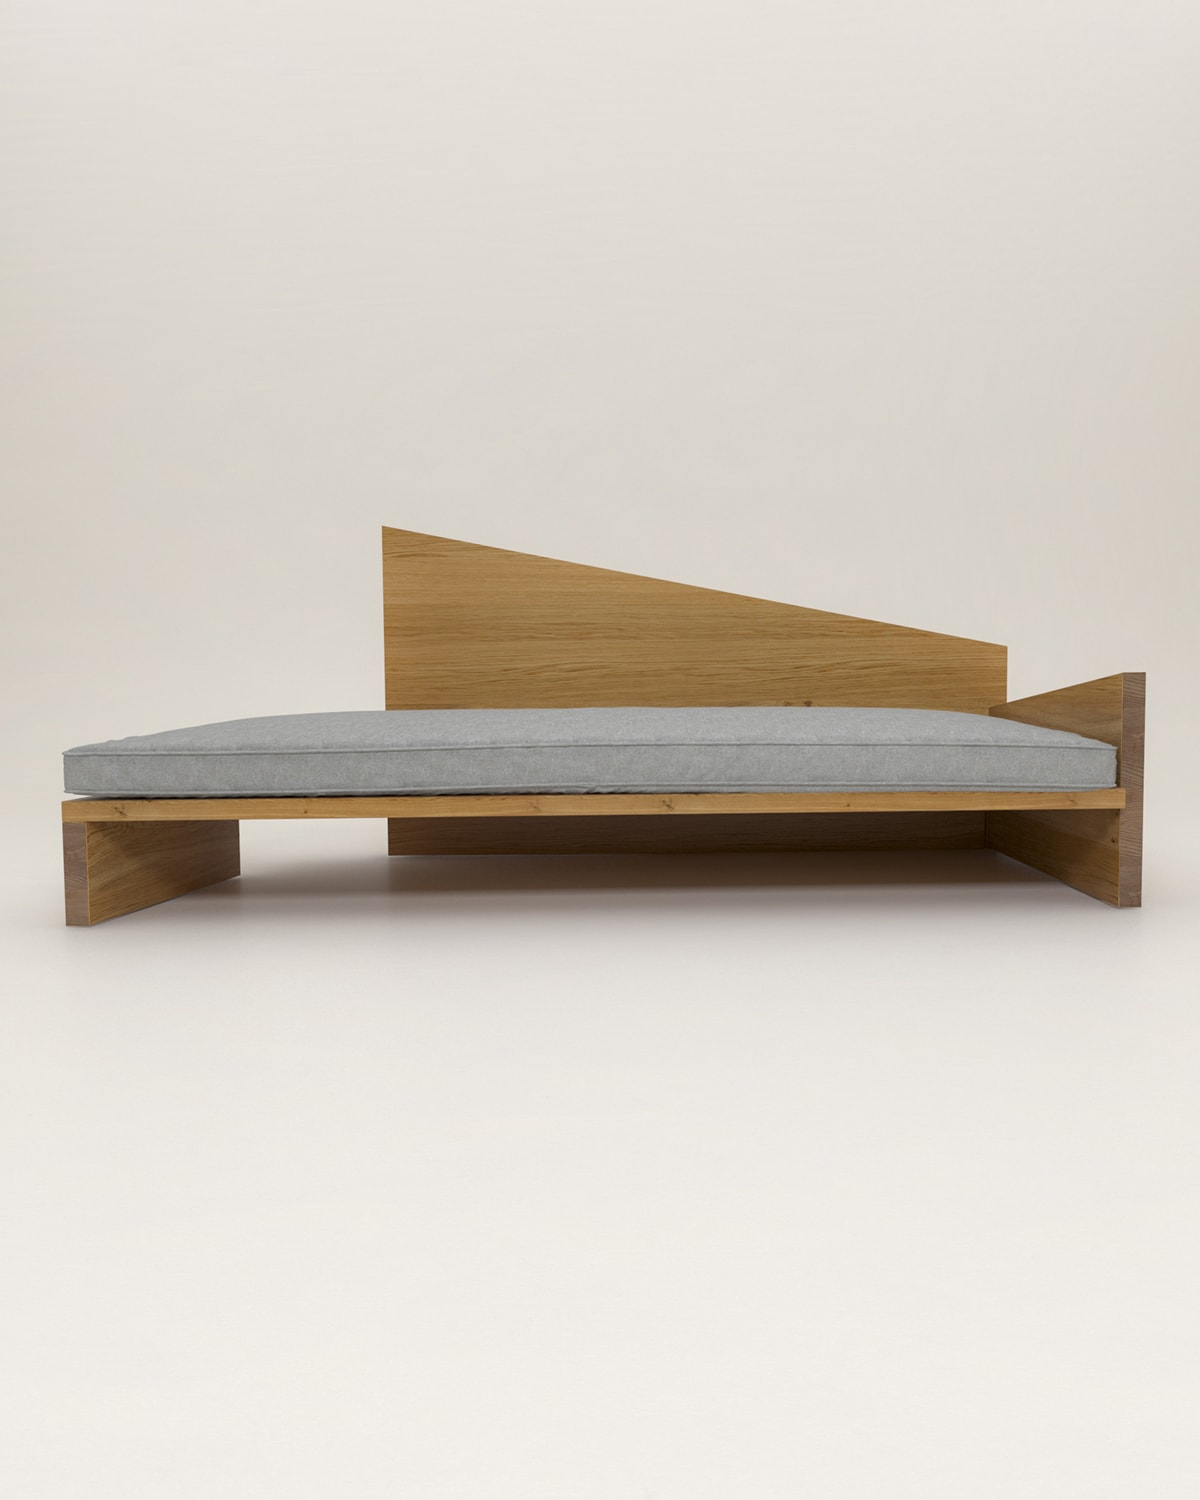 crooked_daybed_03_1